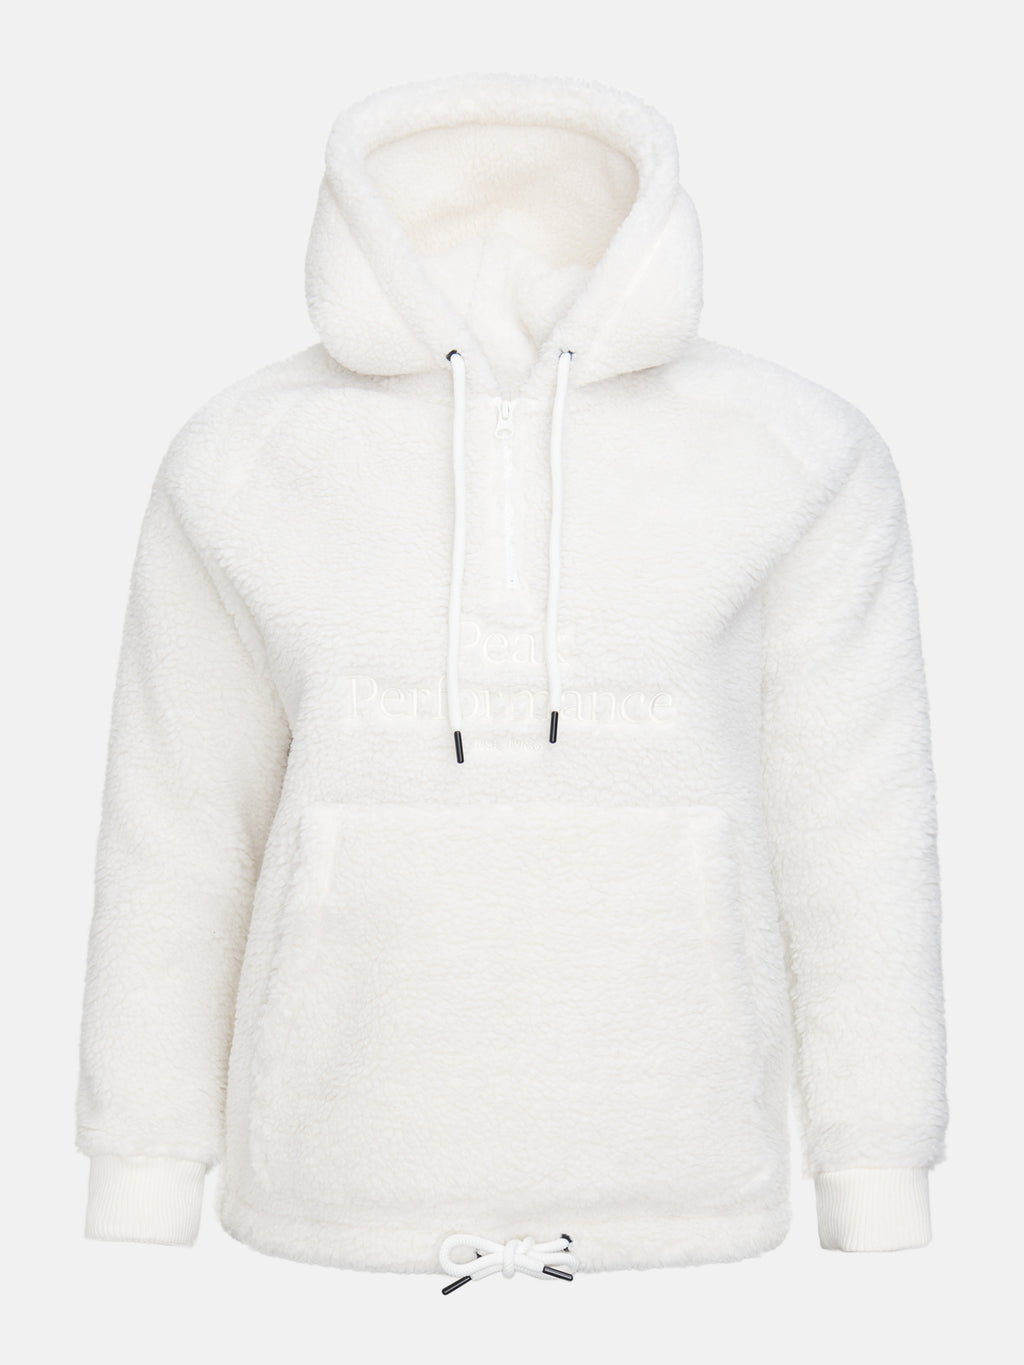 PEAK PERFORMANCE DAM Original Pile Zip Hoodie Offwhite